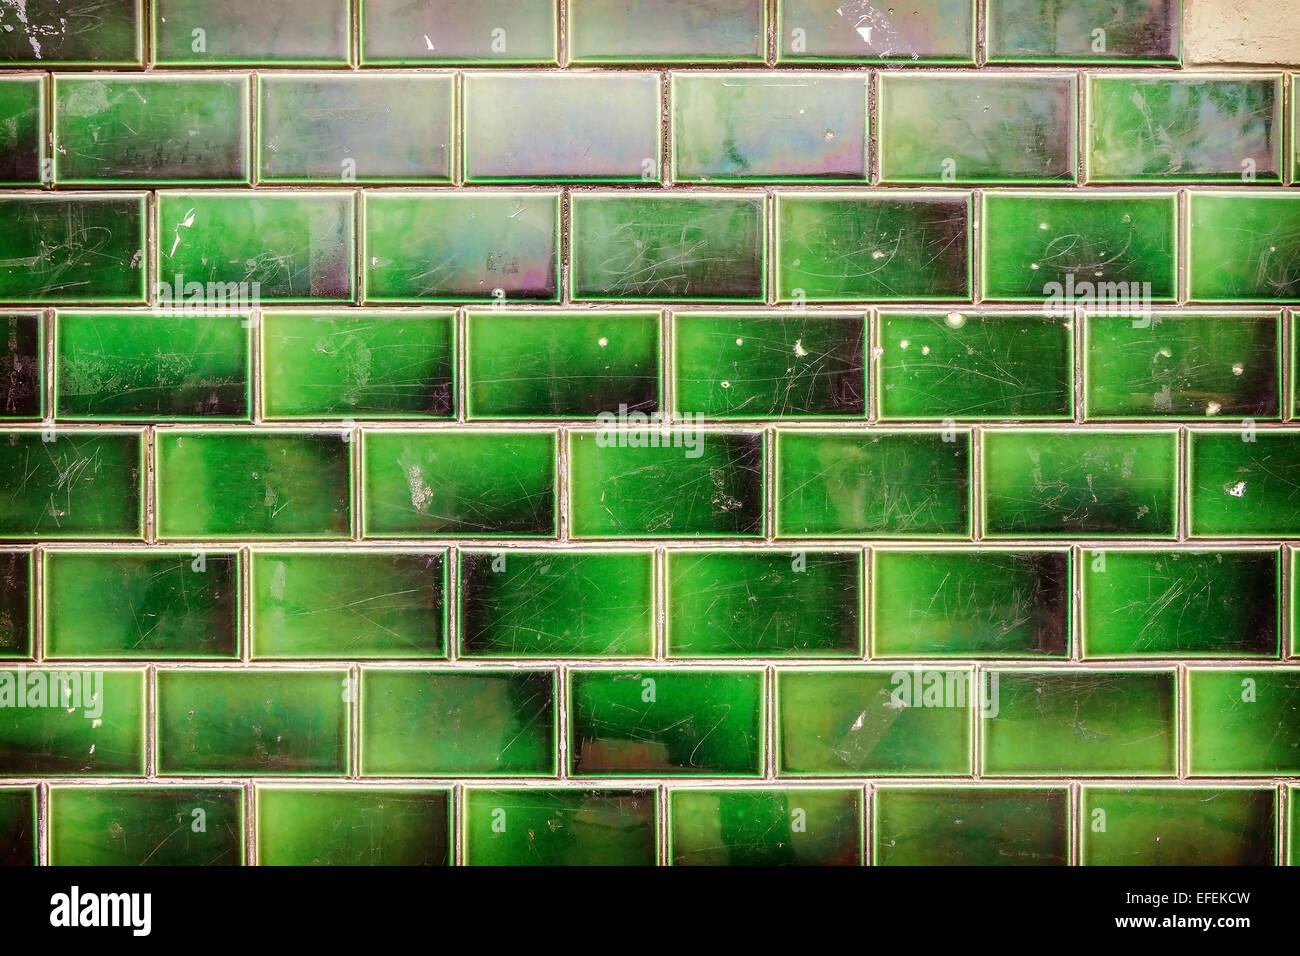 Green grungy tile wall background or texture. - Stock Image